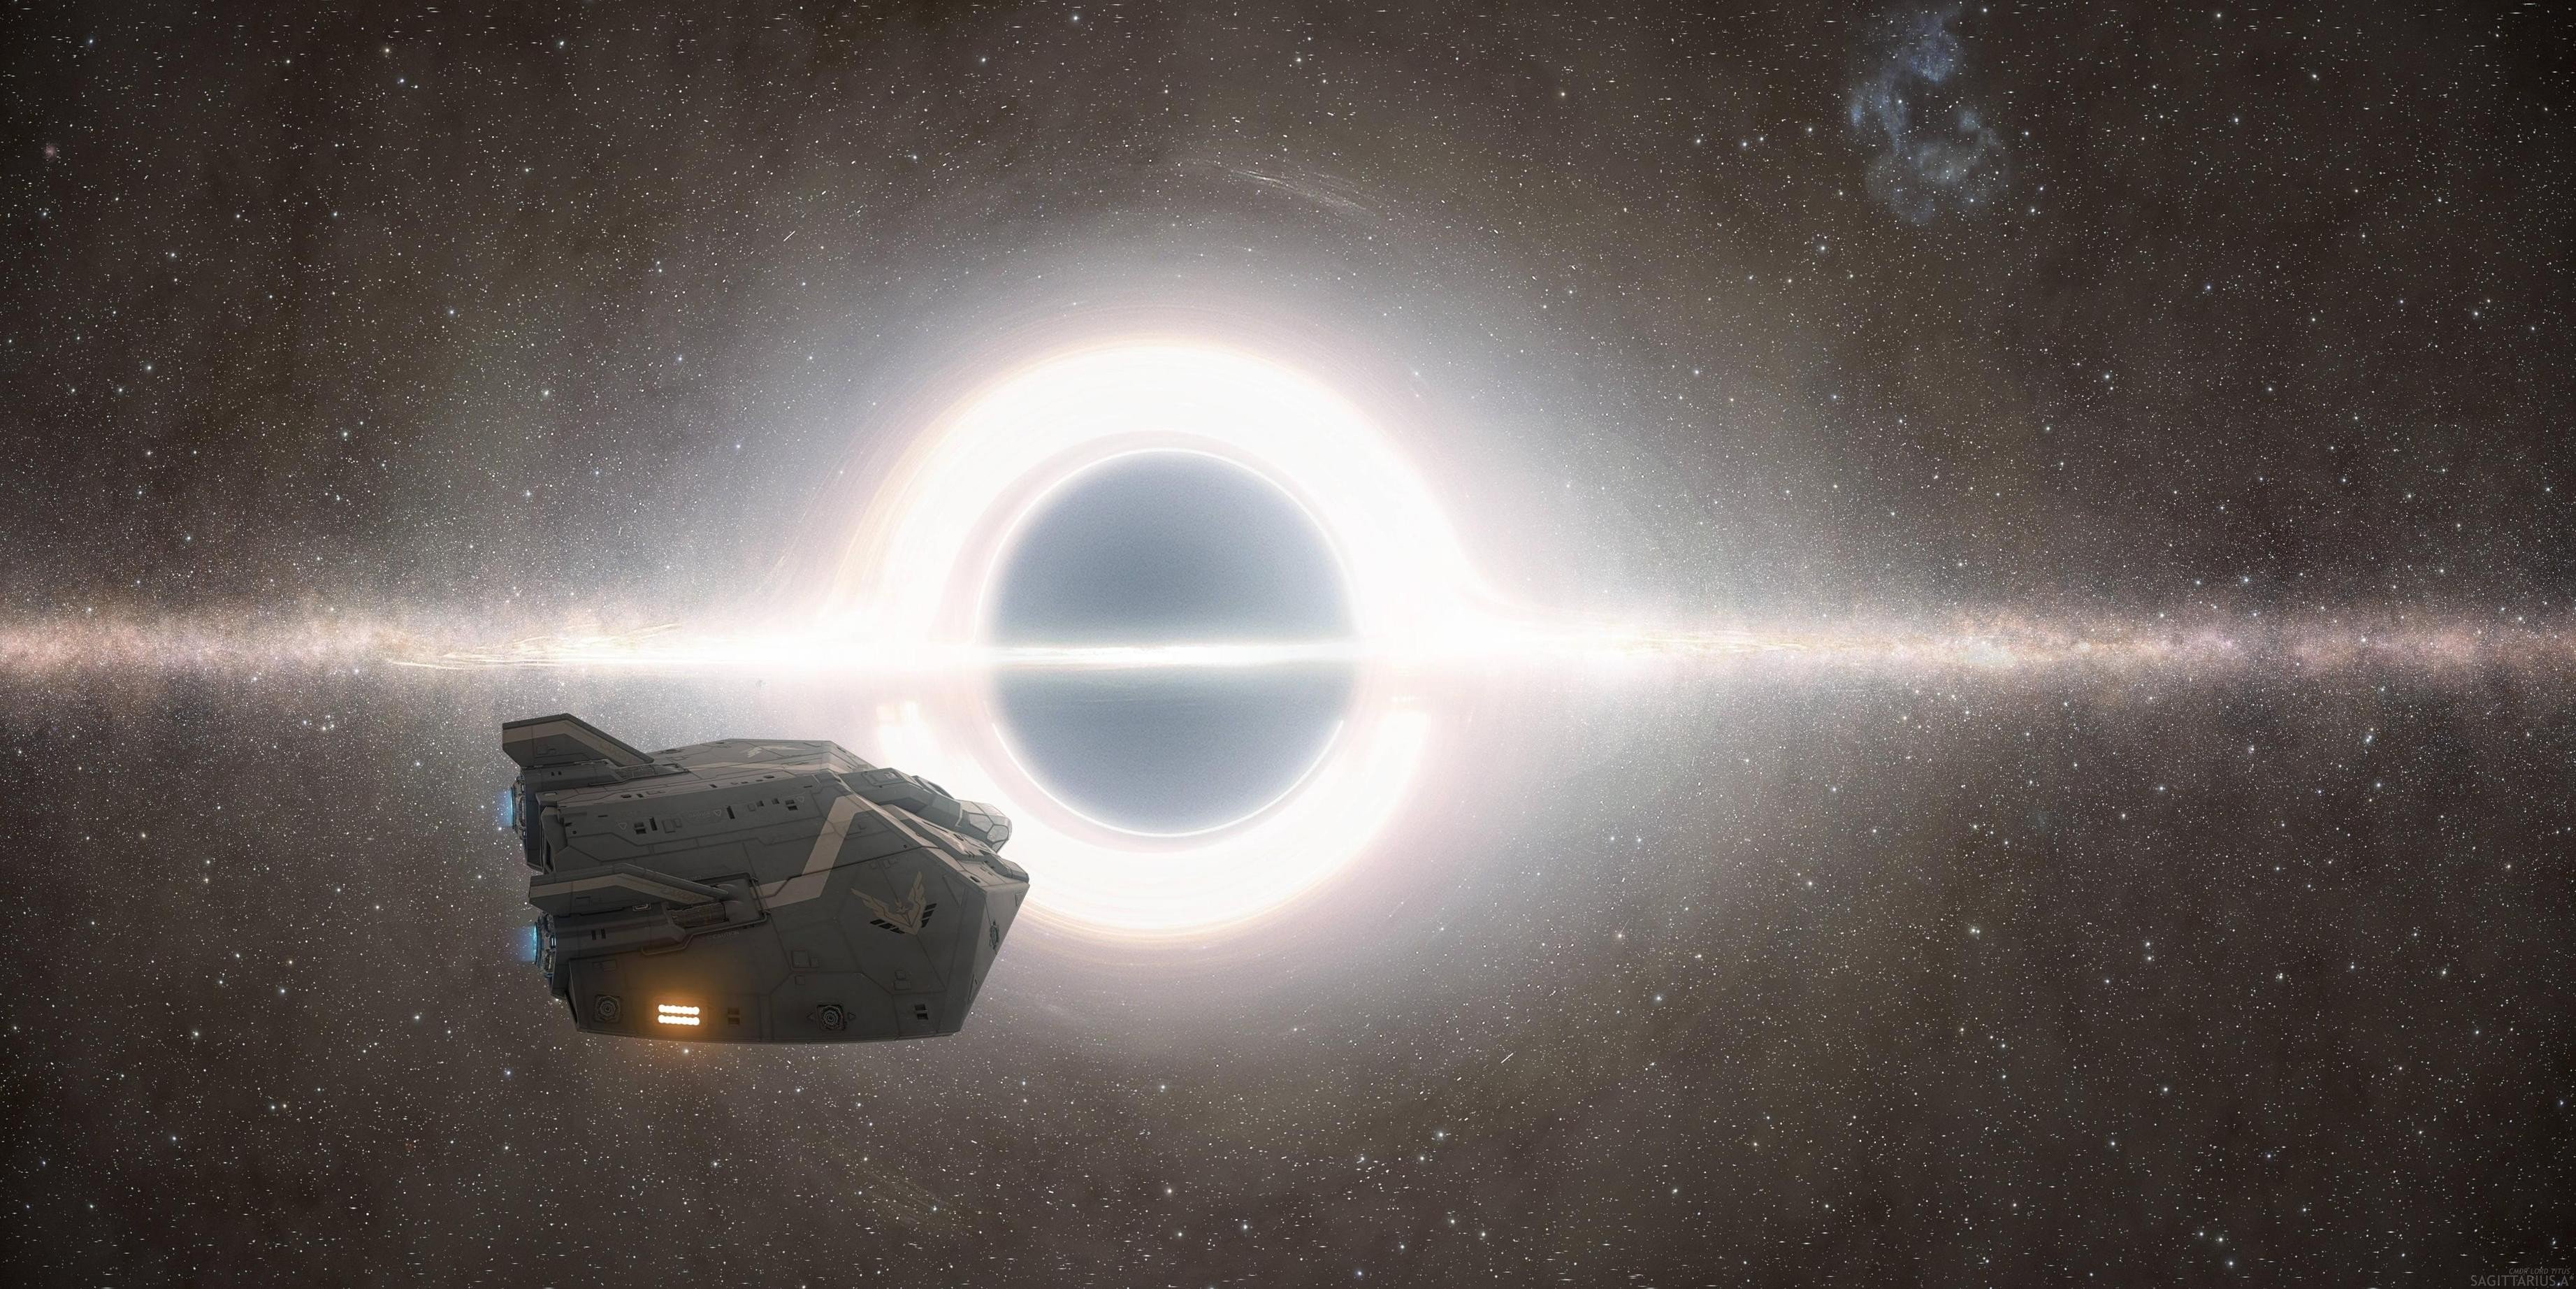 Elite Dangerous Spaceship Photo Manipulation Black Holes Stars Space Science Fiction Hd Wallpapers Desktop And Mobile Images Photos